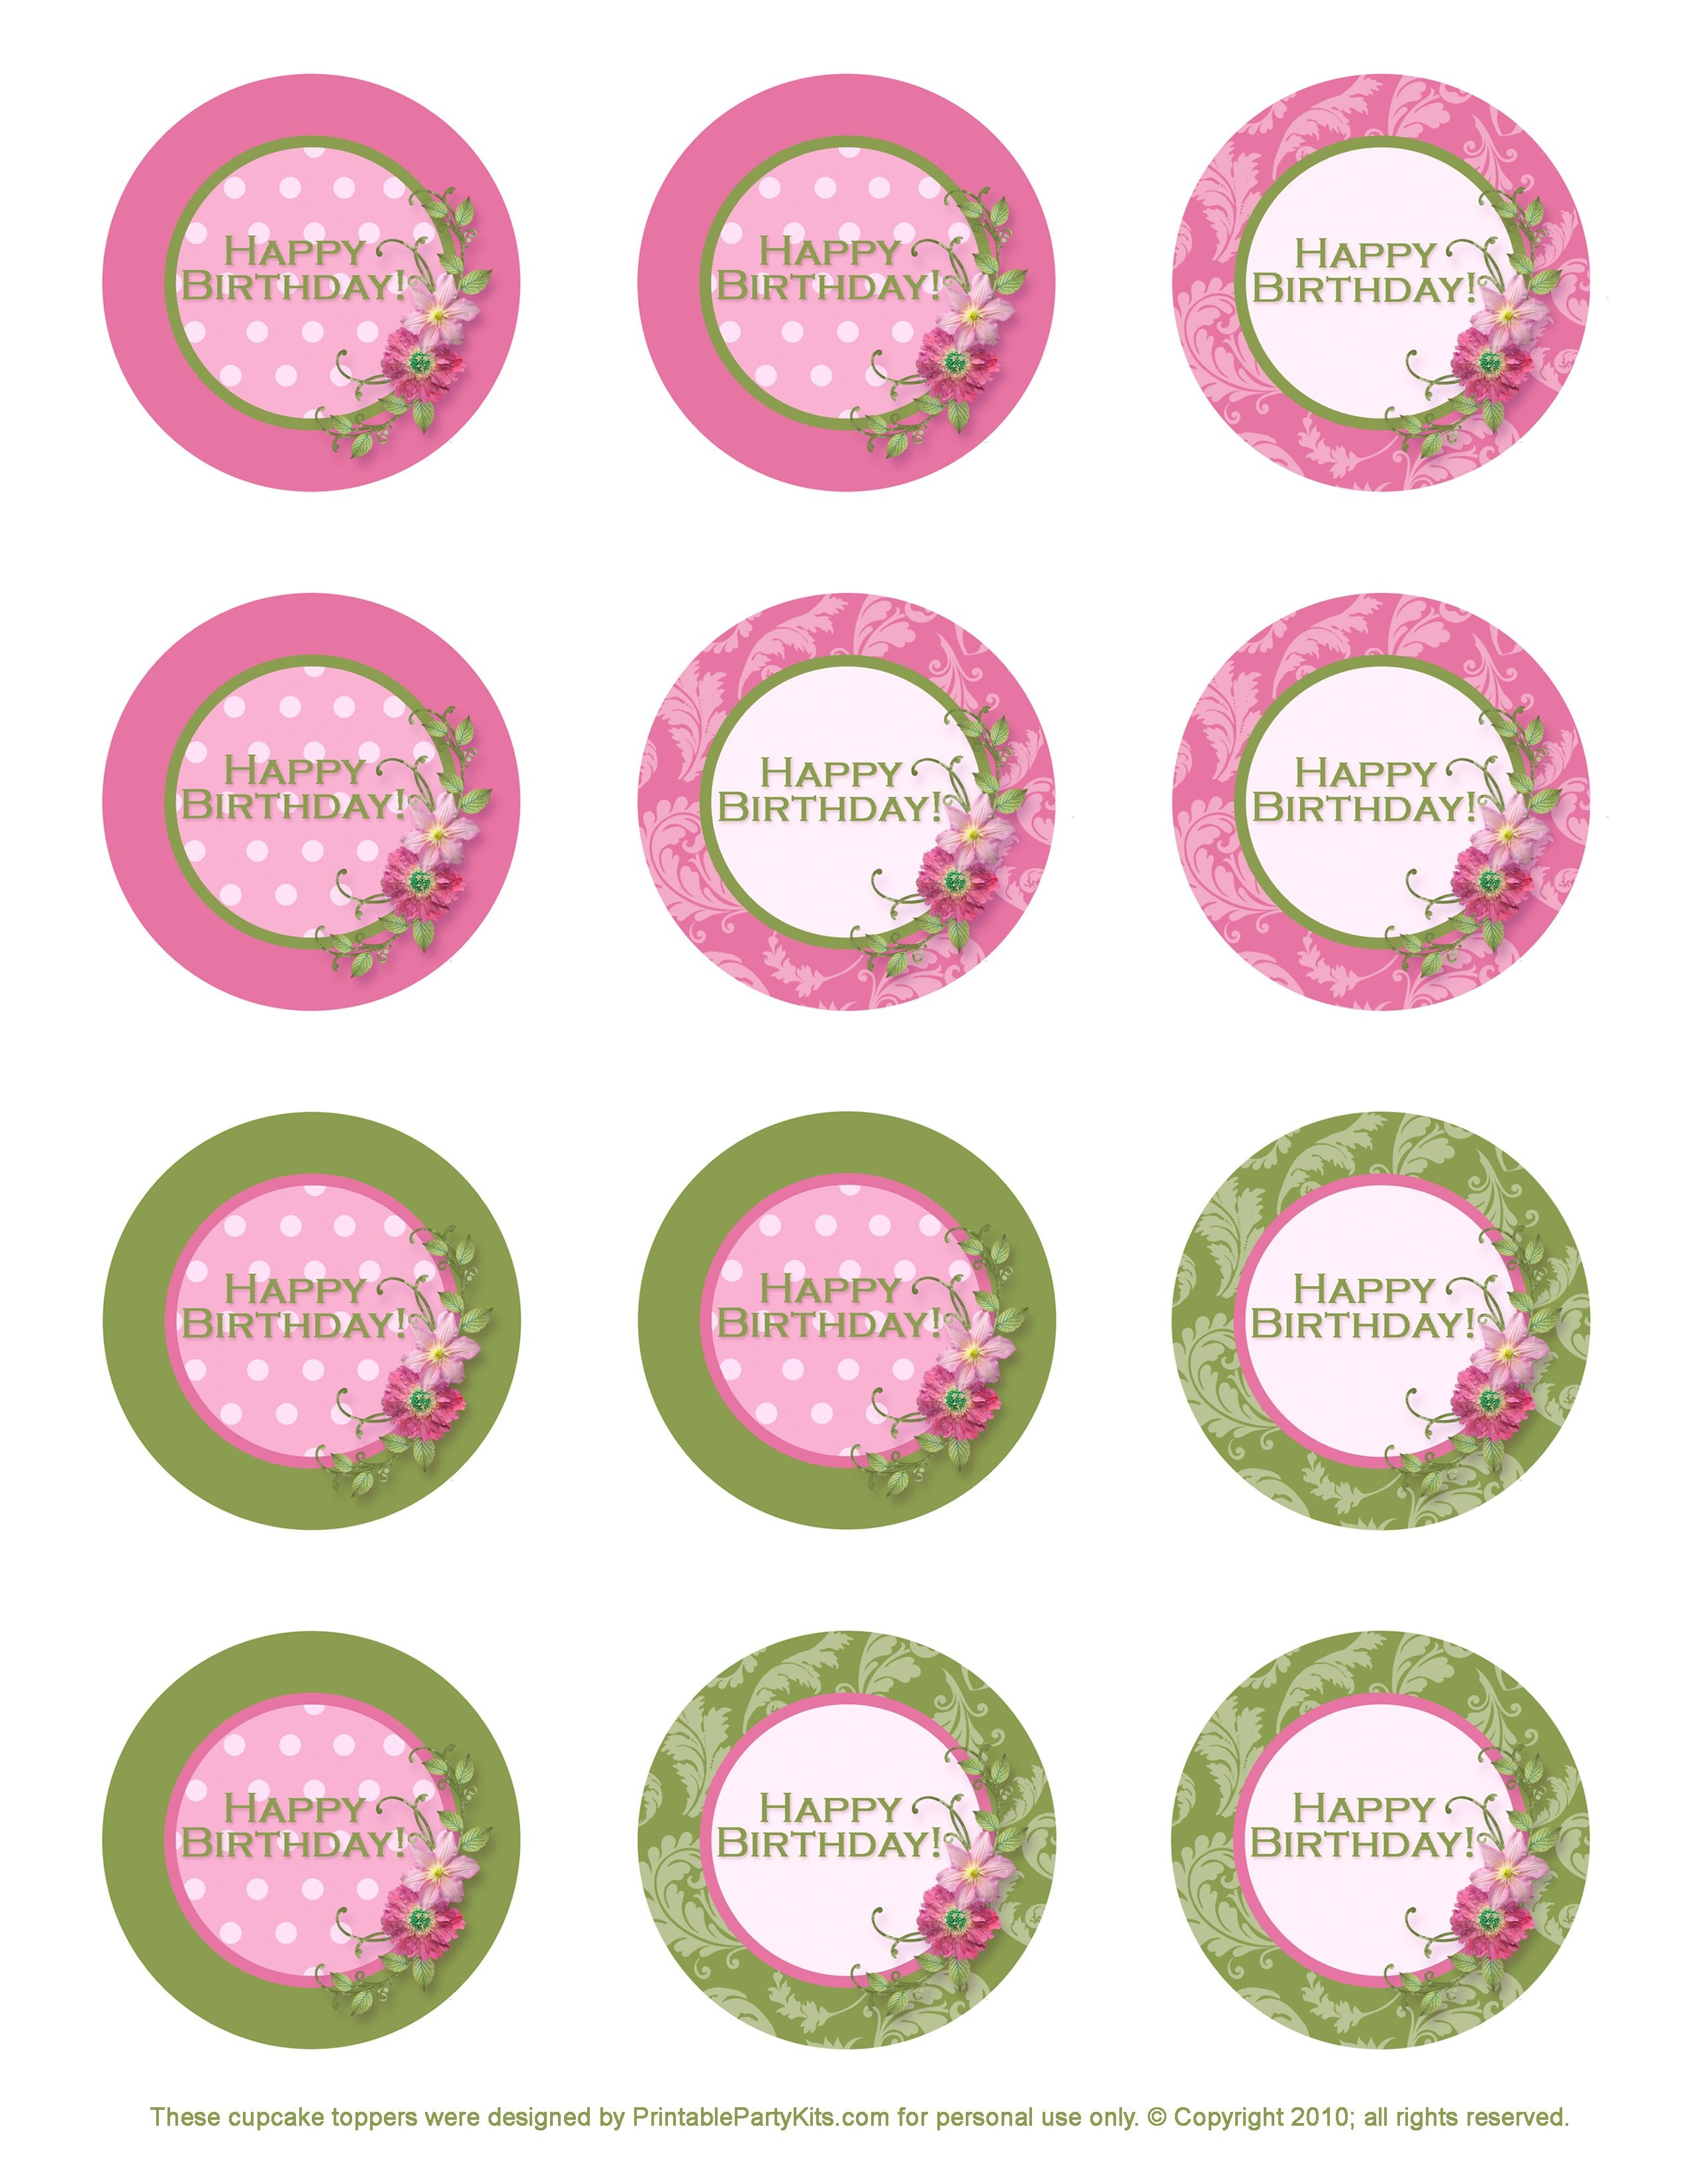 Free Printable Birthday Cupcake Toppers   Crafts   Cupcake Toppers - Free Printable Cupcake Toppers